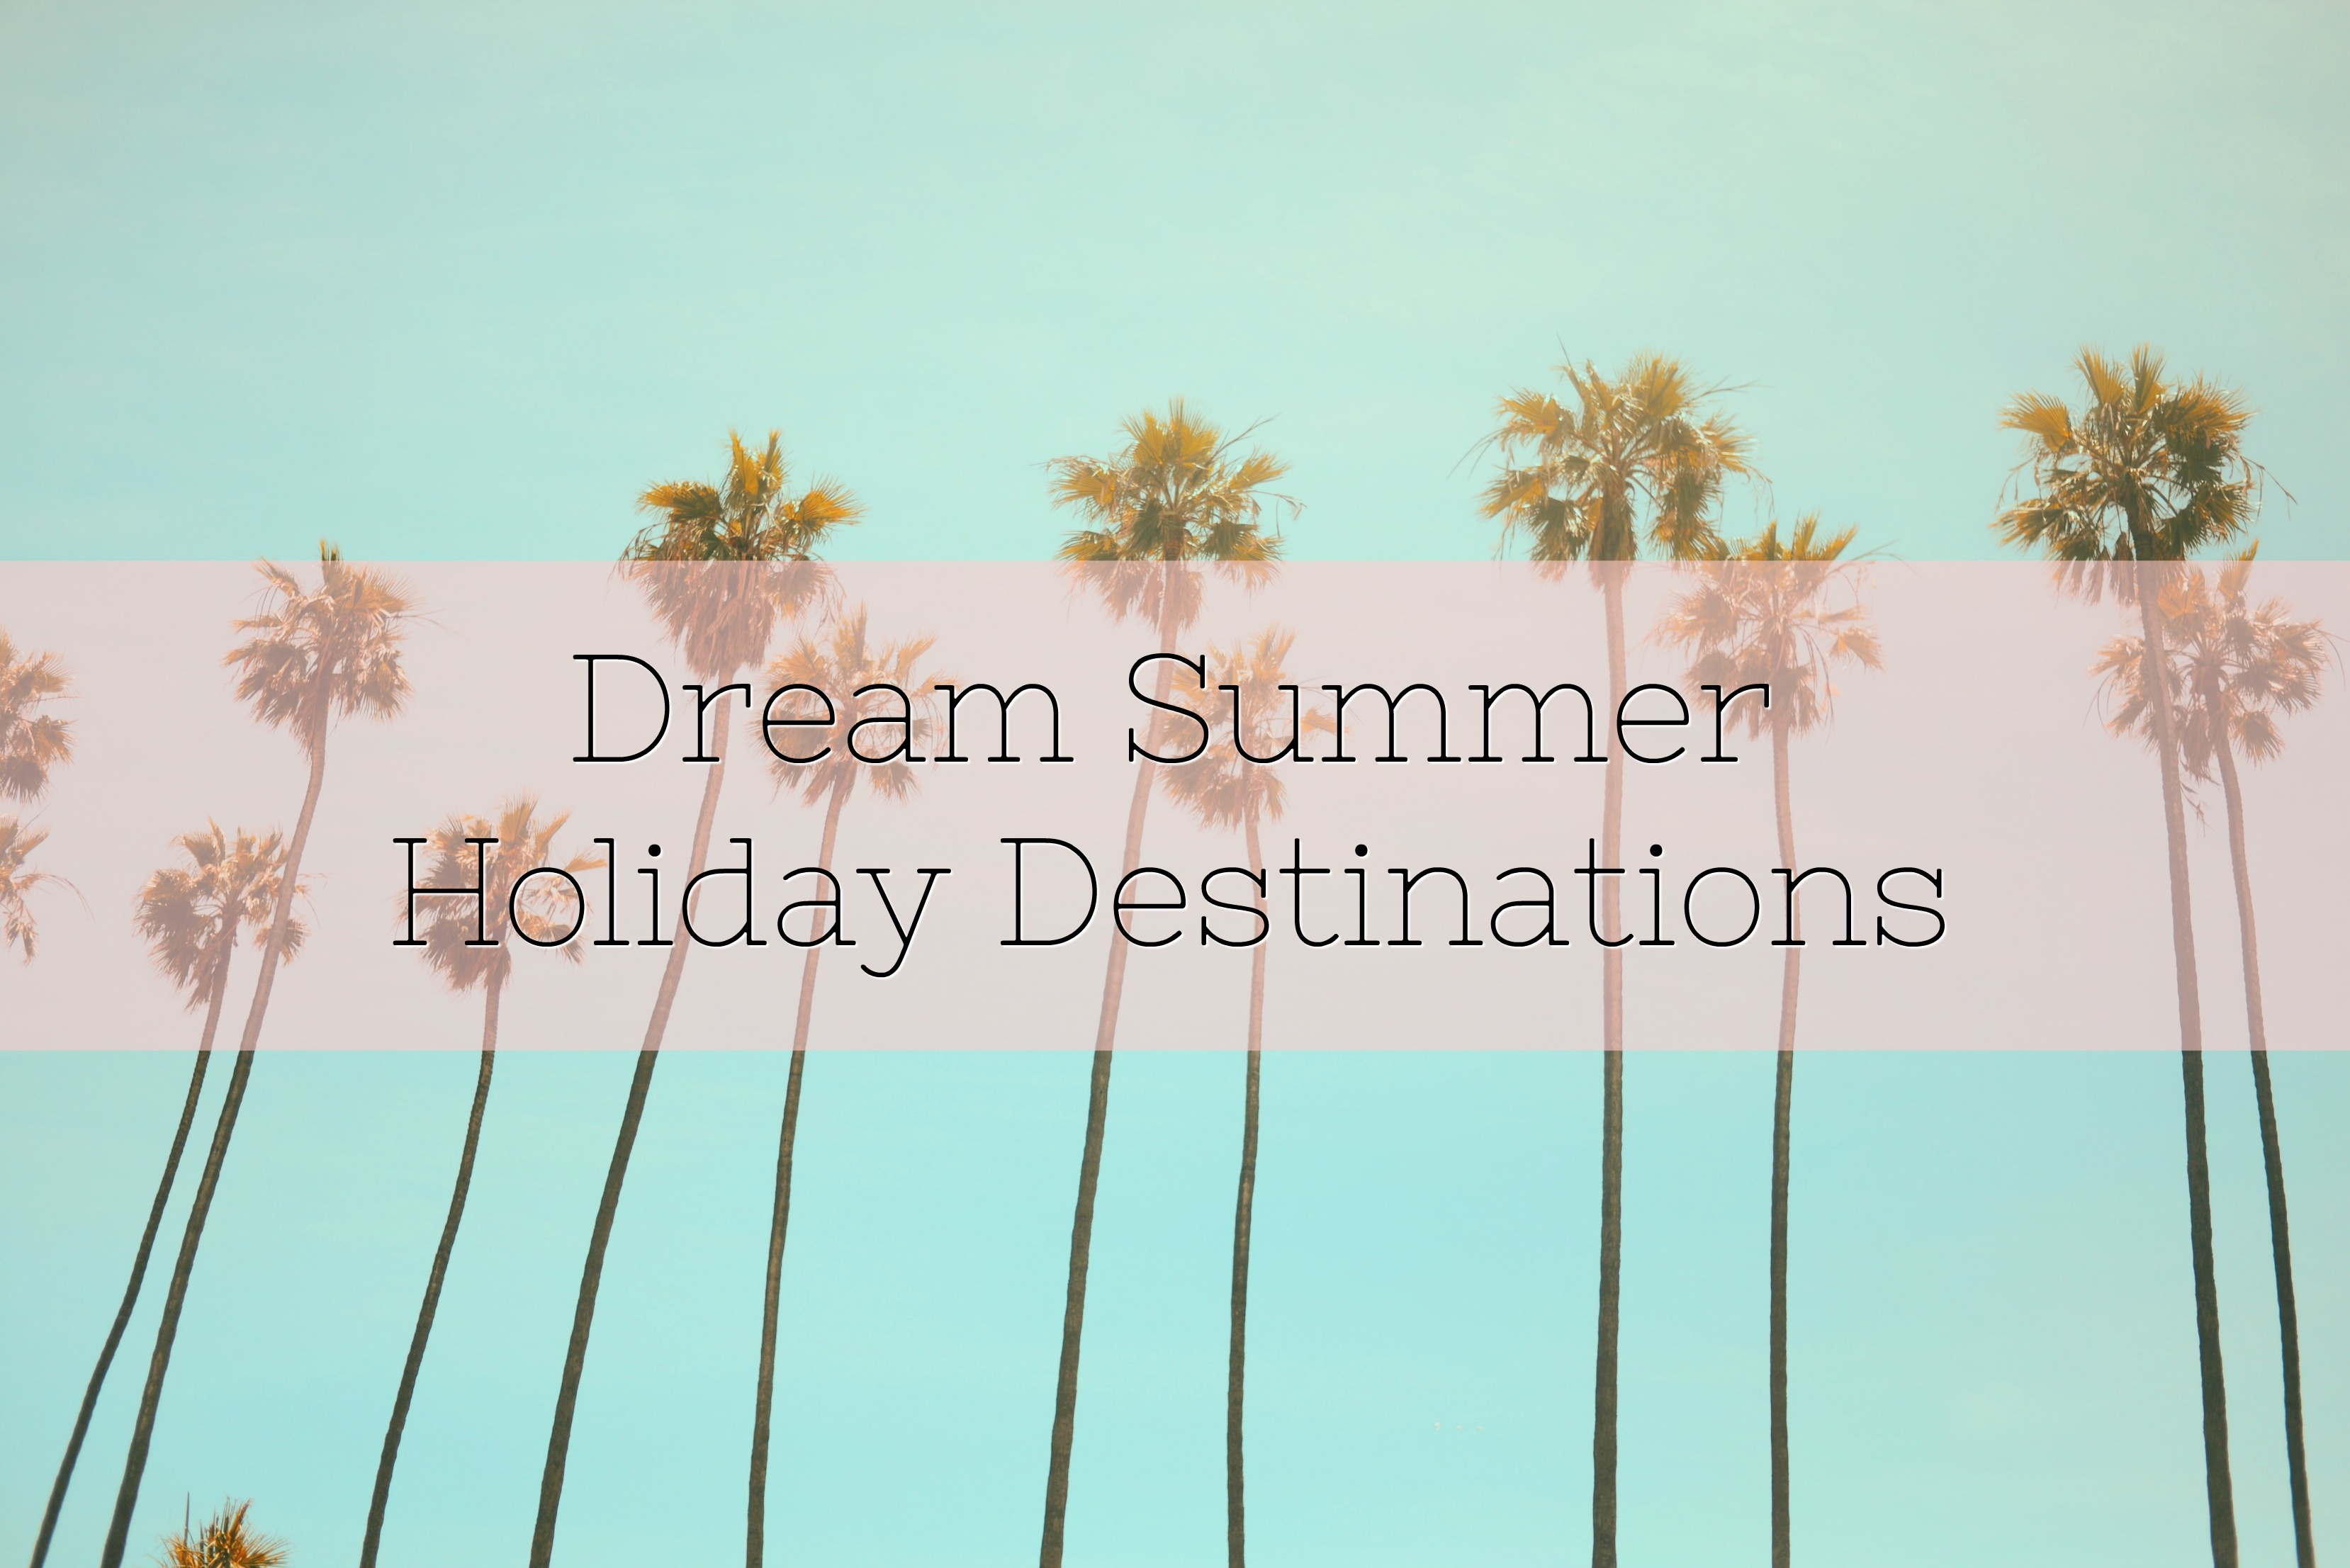 Dream Summer Holiday Destinations title